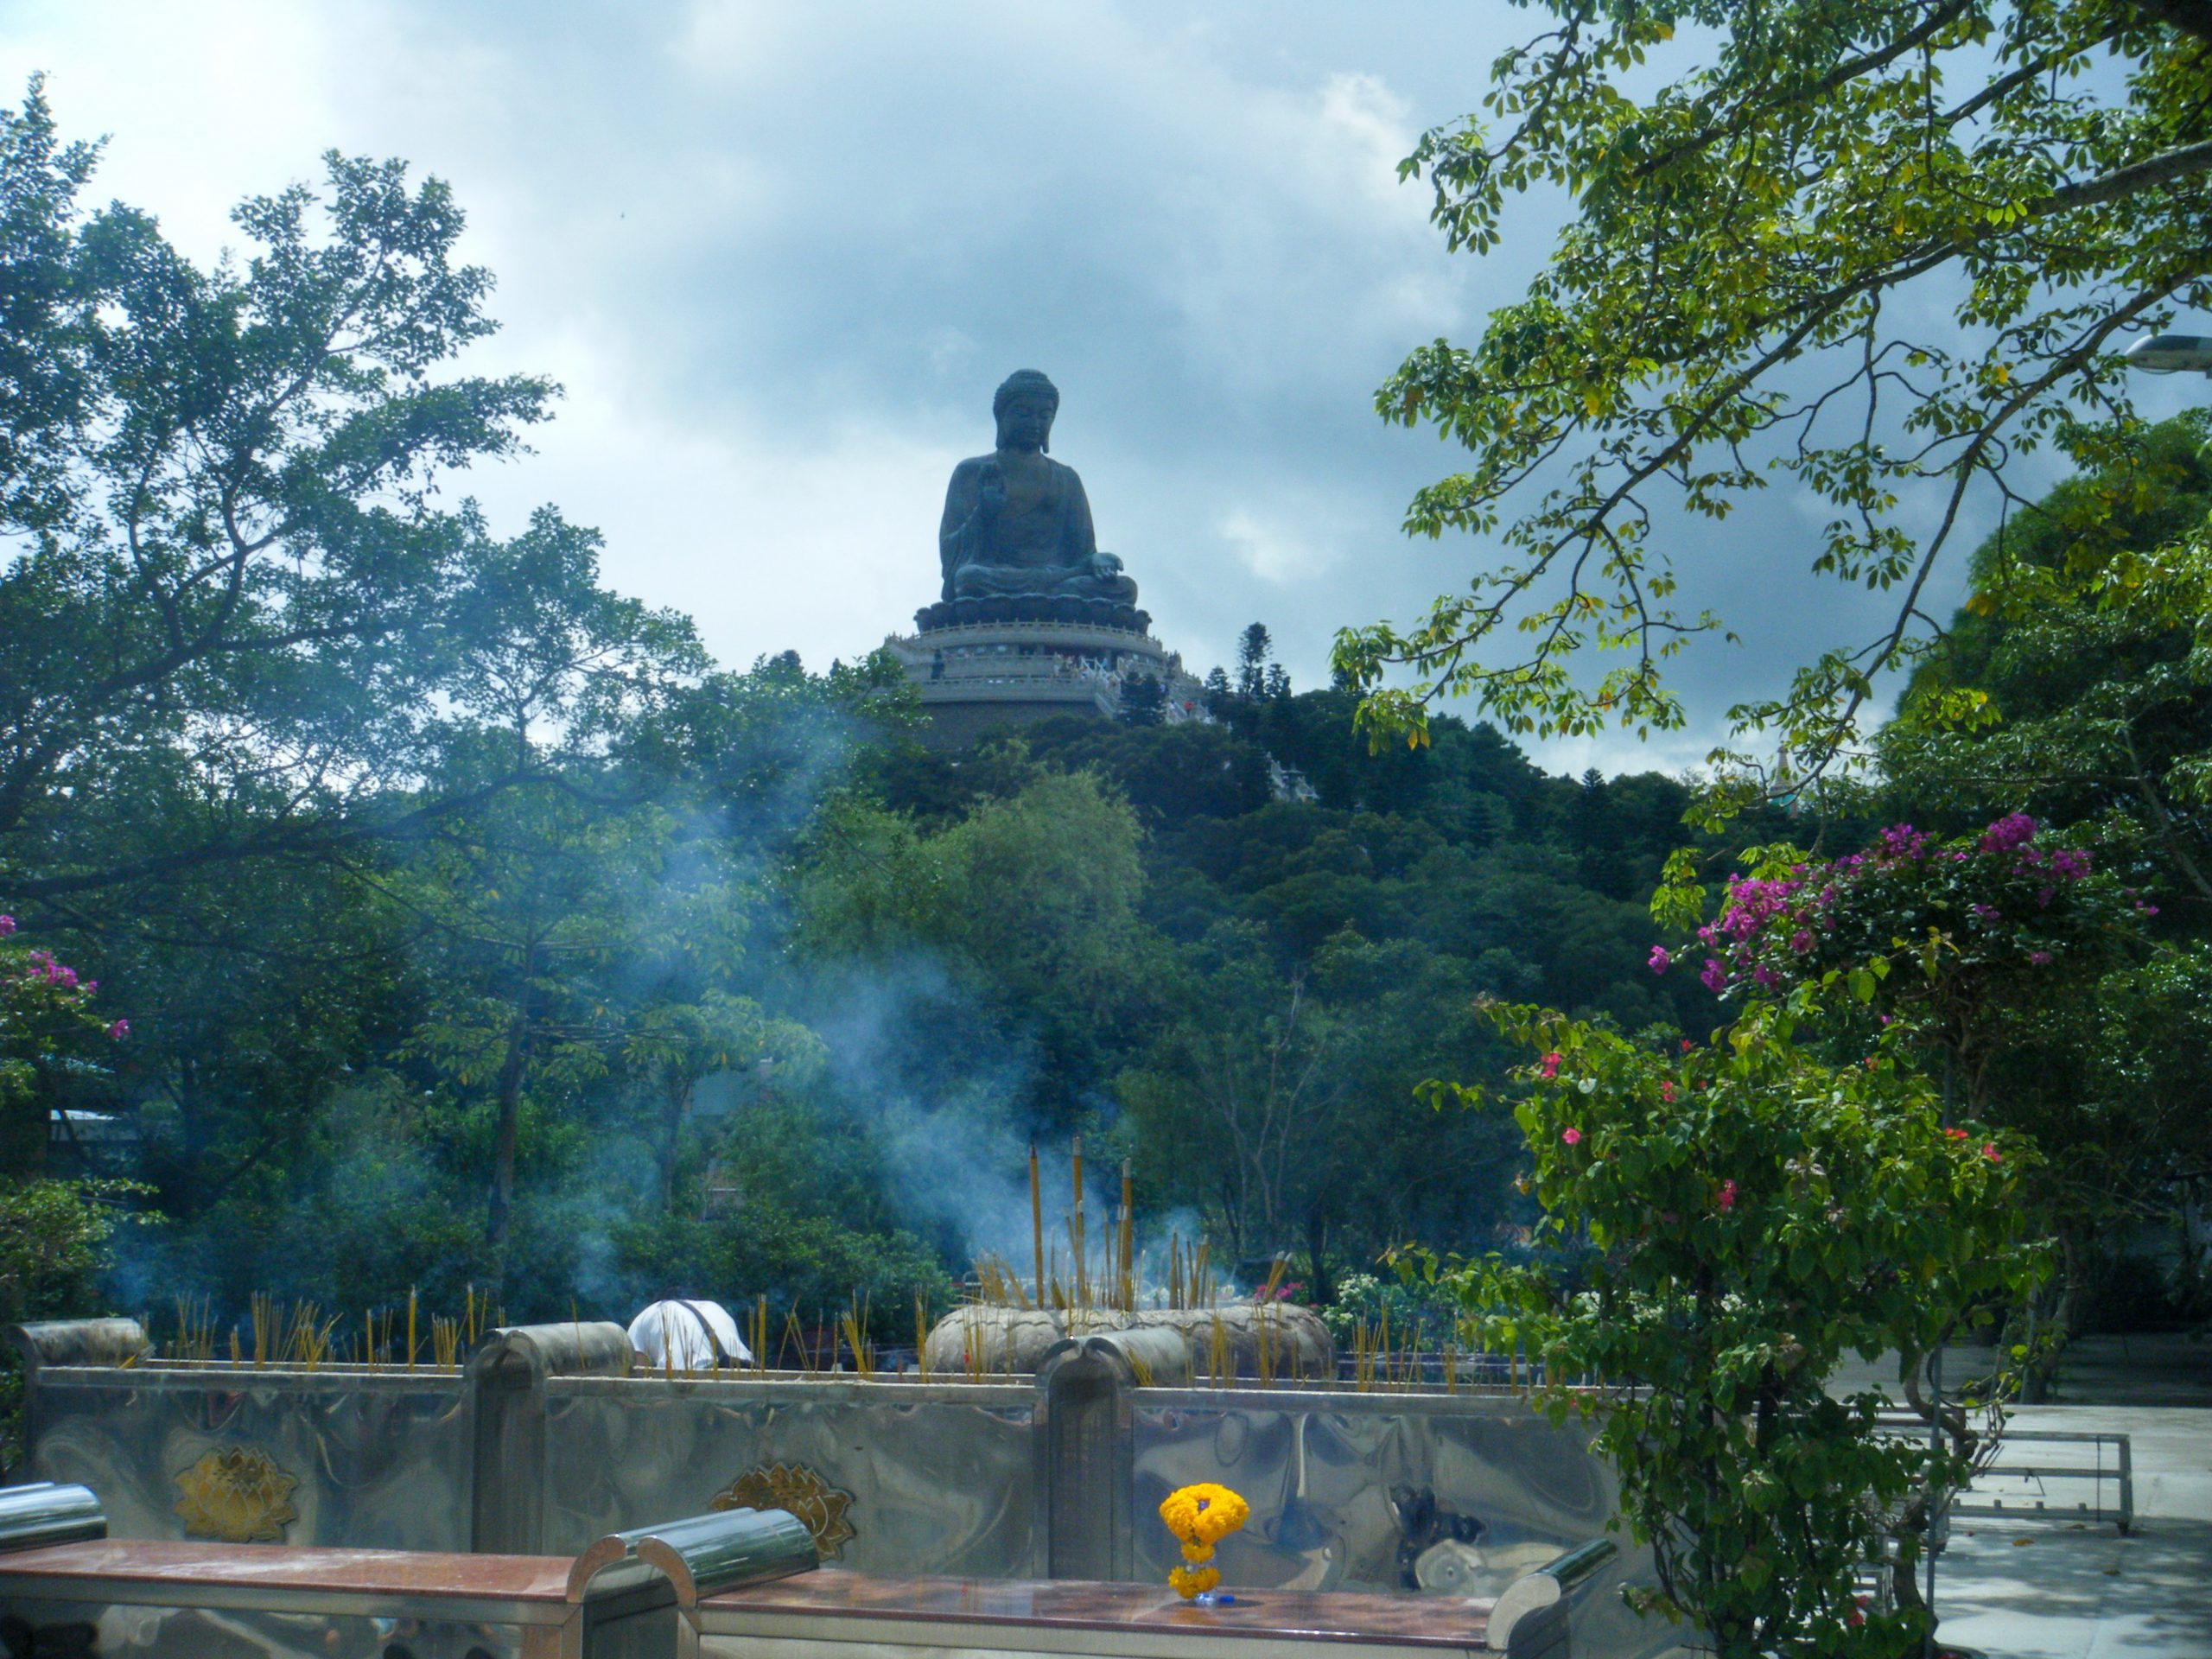 The Tian Tan Budhha, Lantau Island, should be on your list of things to do in Hong Kong